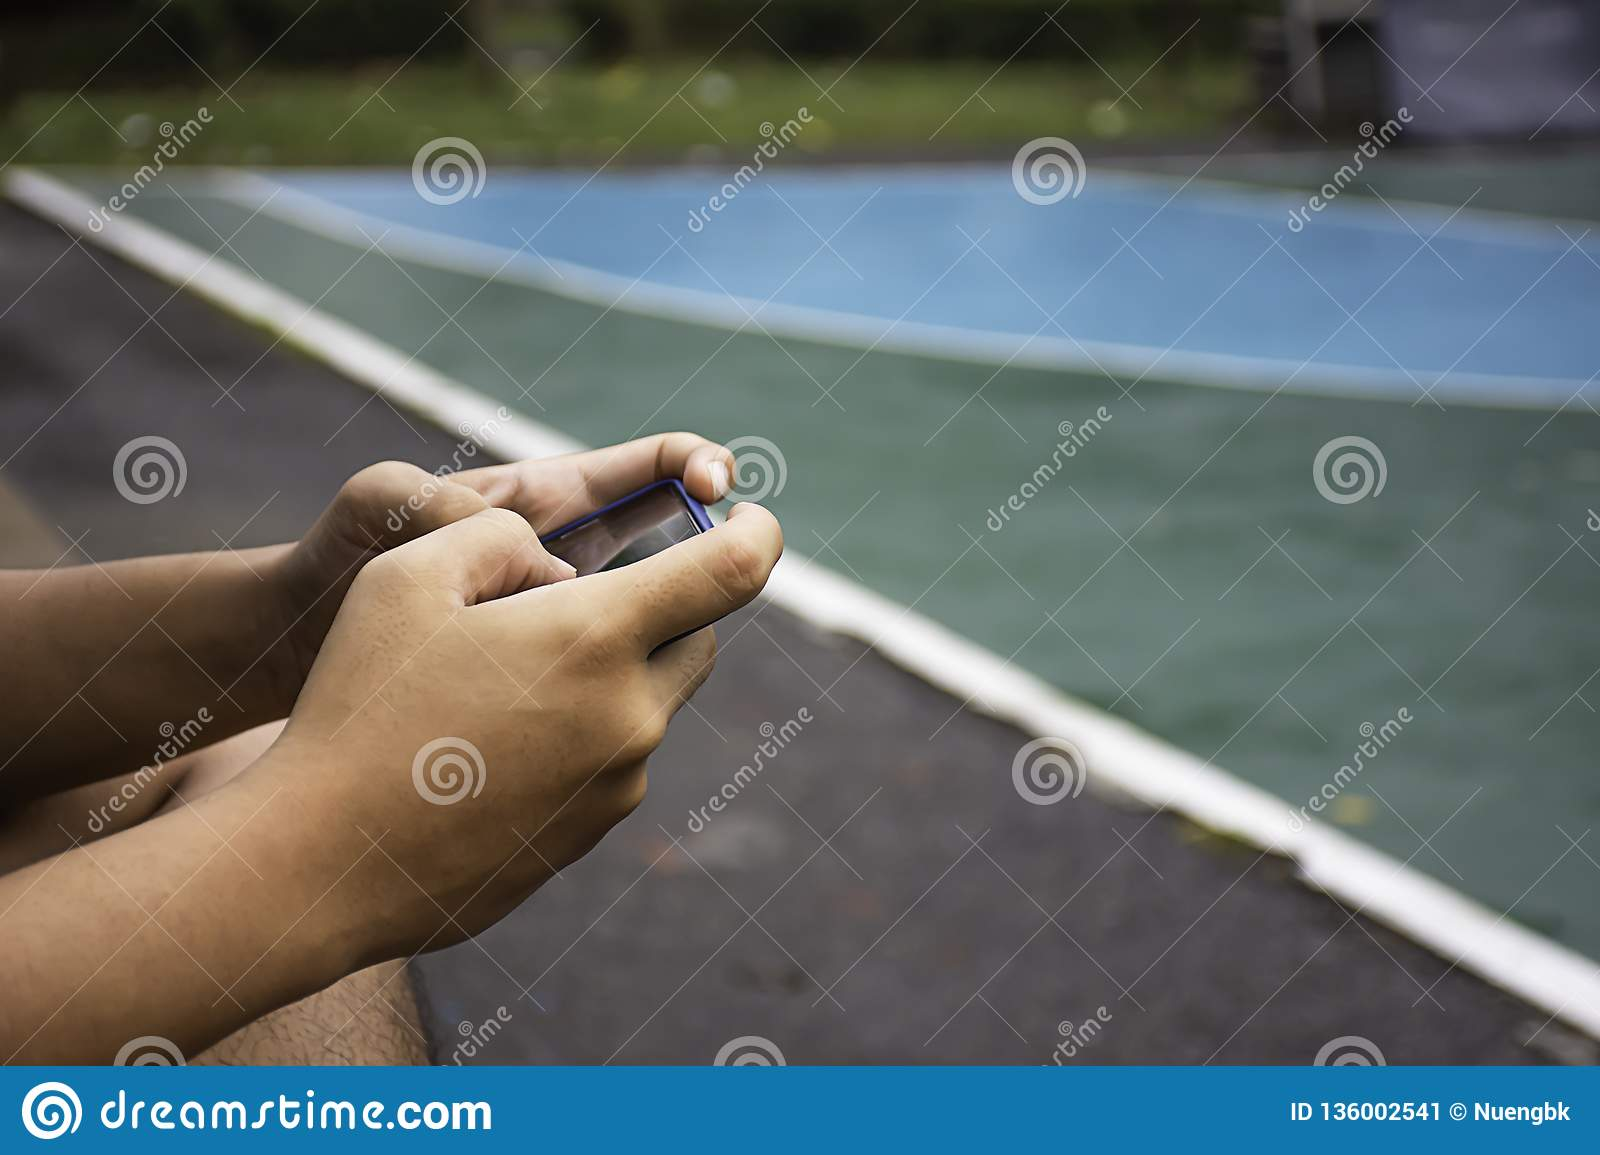 Hand holding telephone Background on basketball court